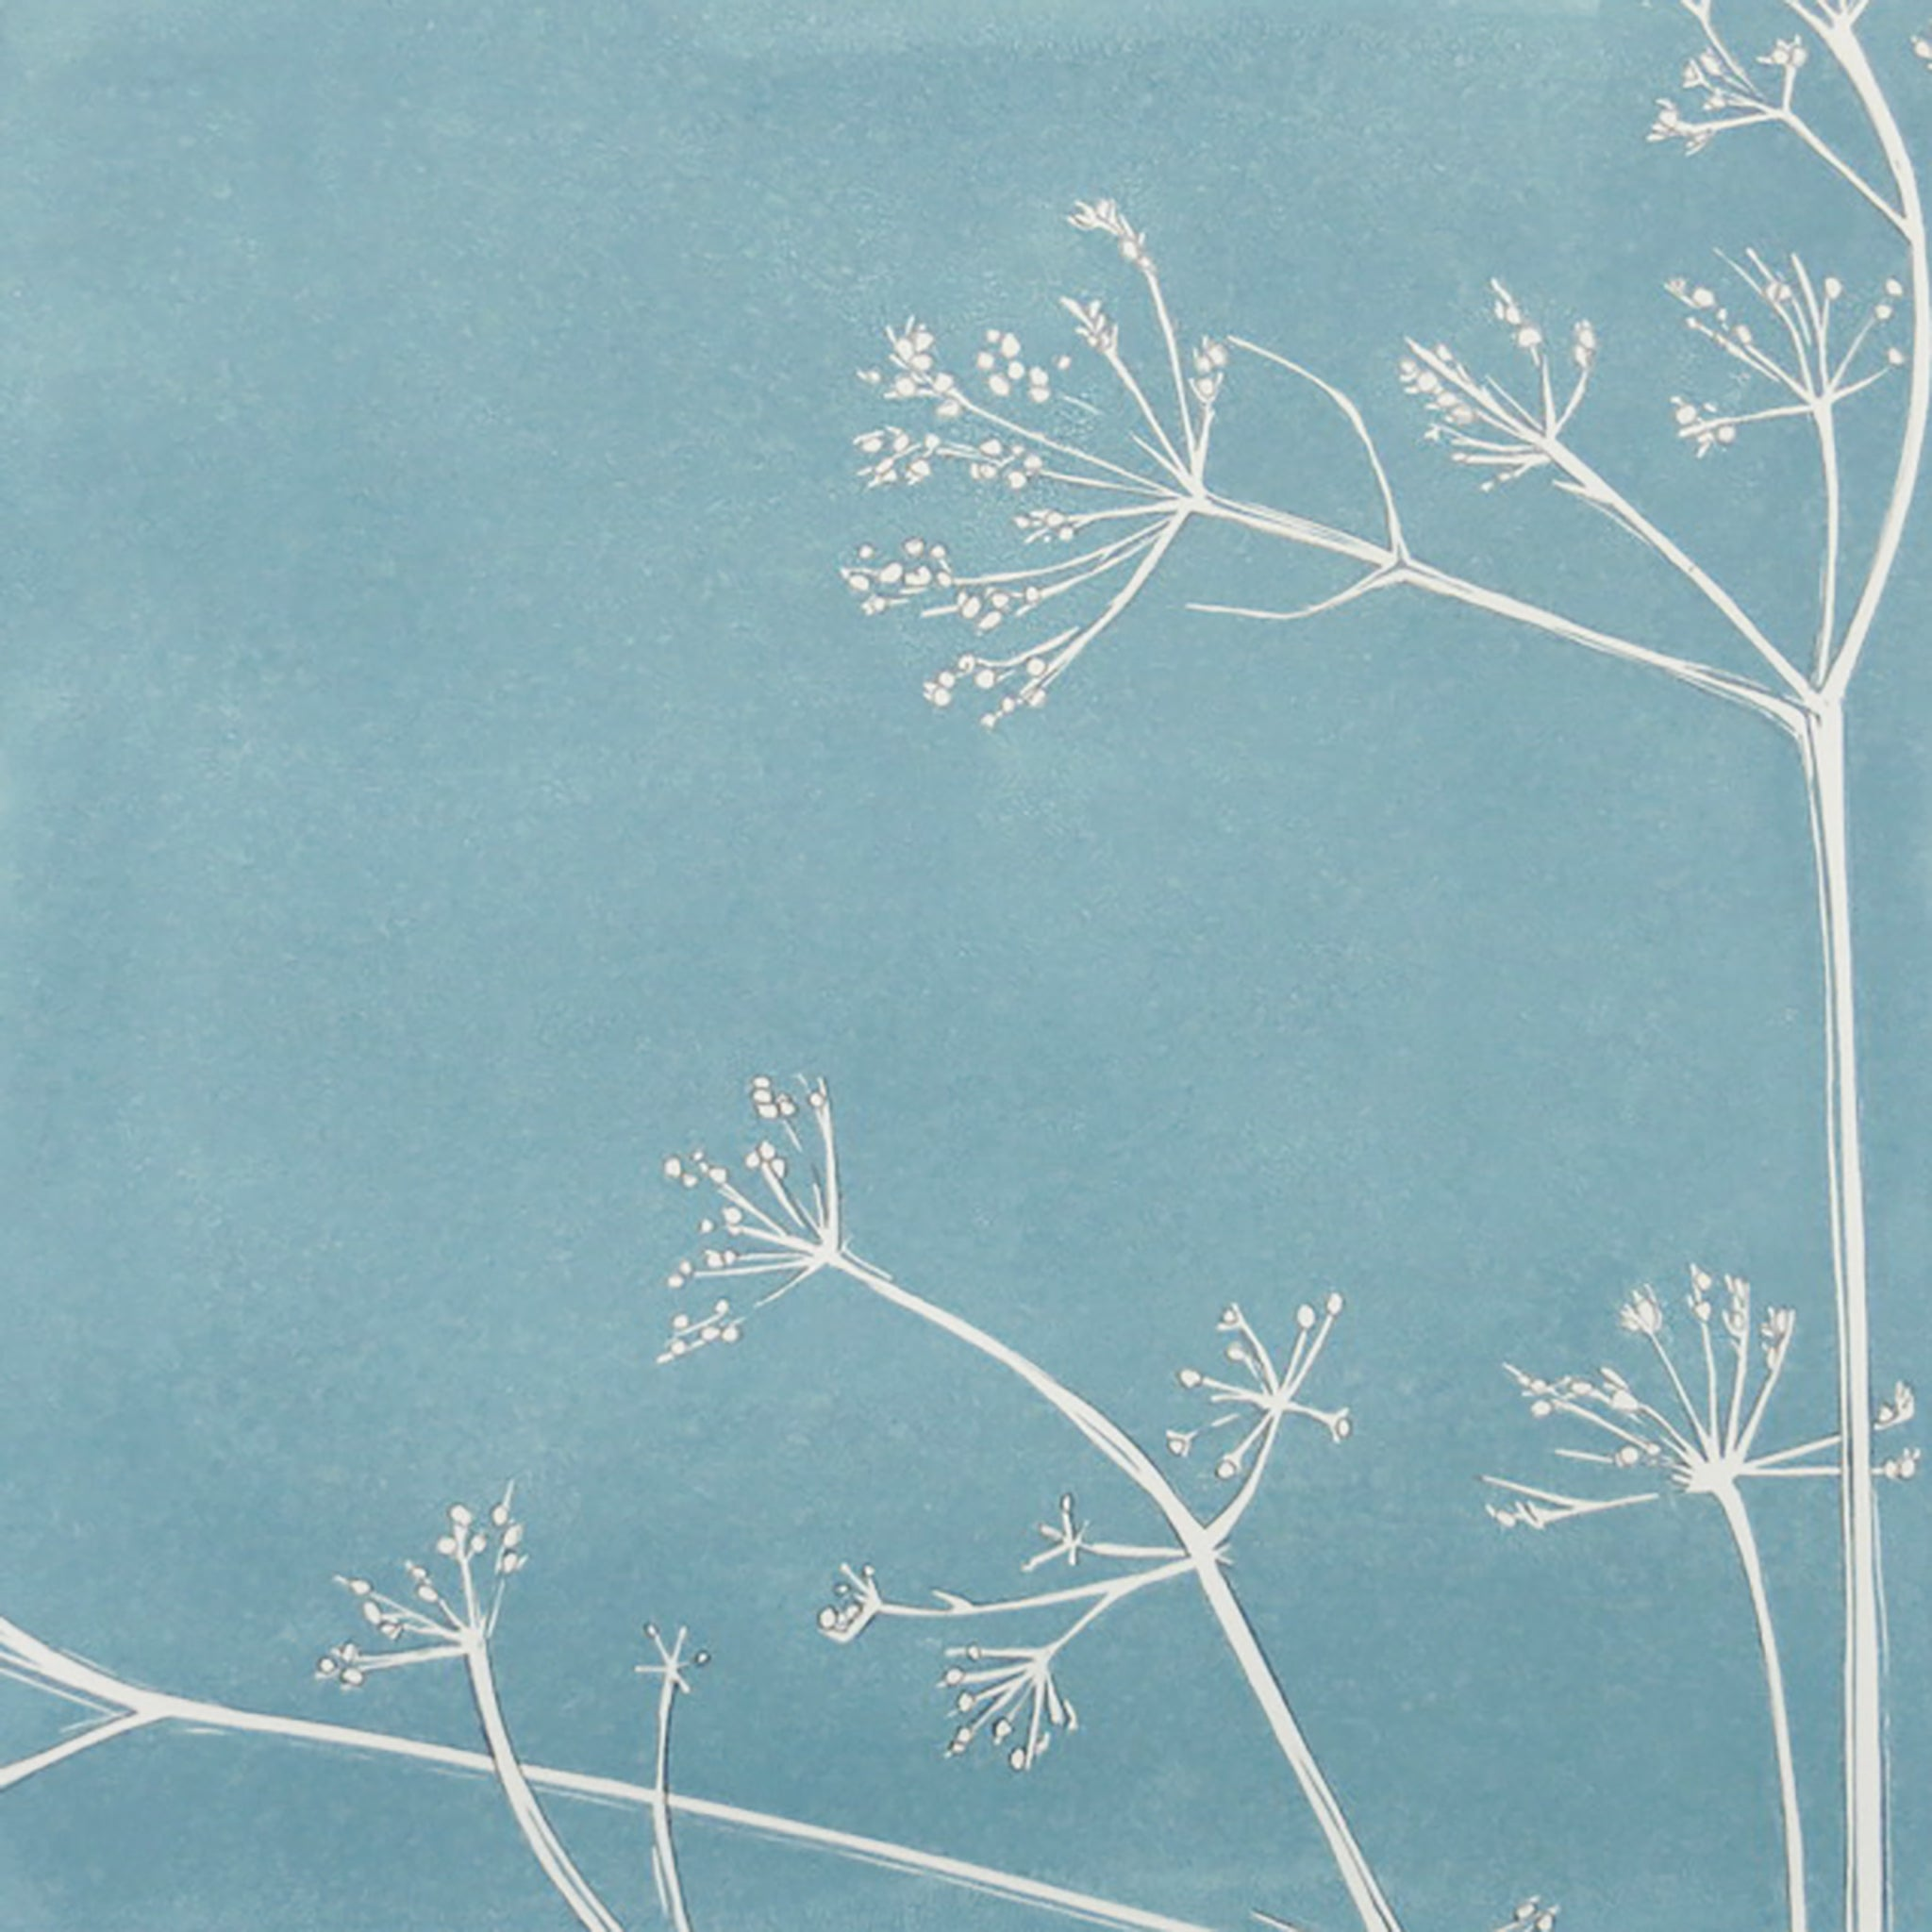 Cow Parsley by Sarah Knight